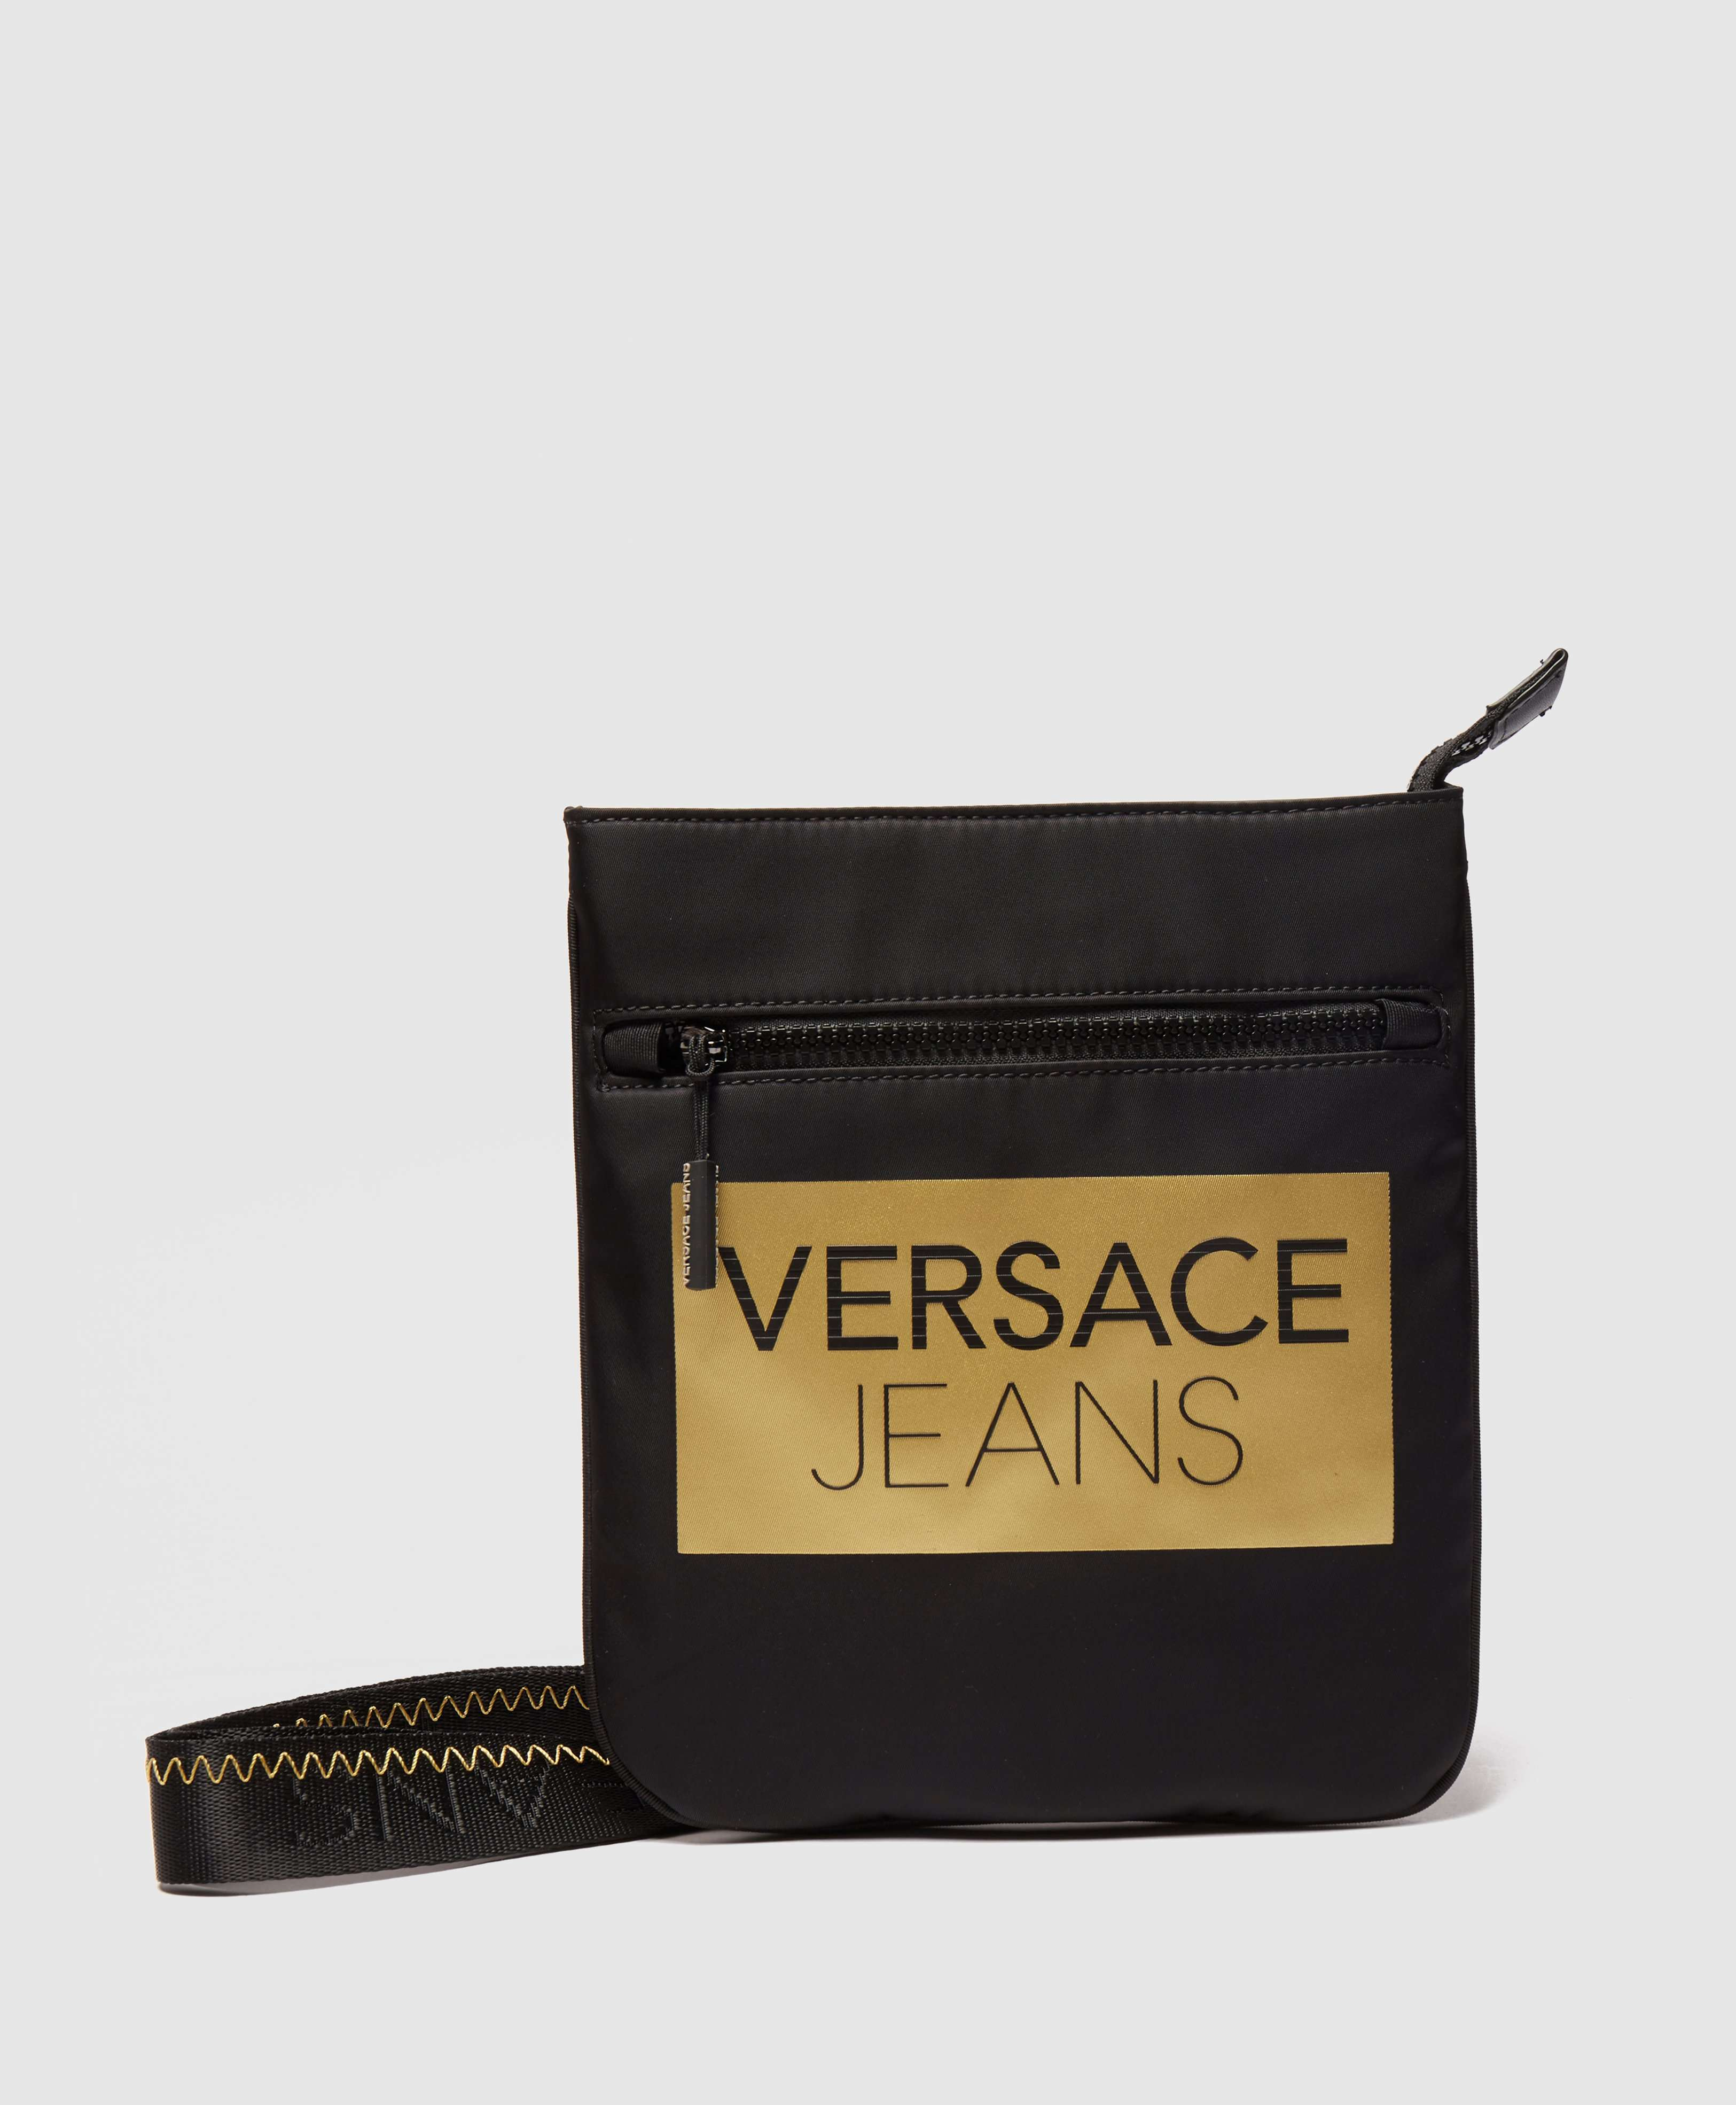 Versace Jeans Block Logo Small Item Bag